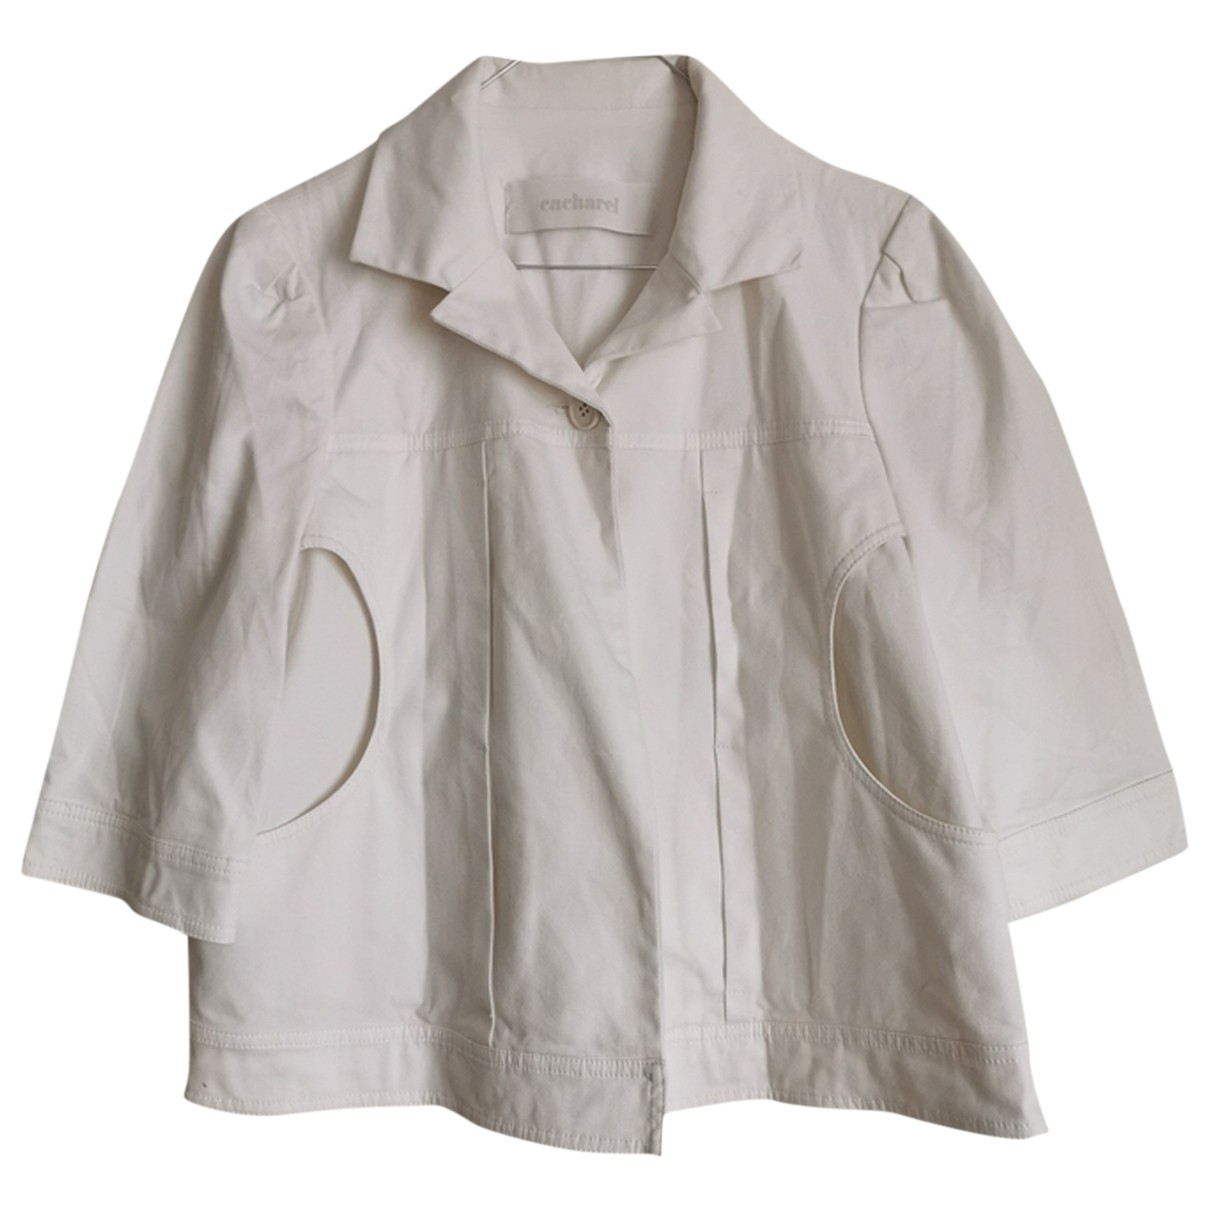 Cacharel \N White Cotton jacket for Women 36 FR